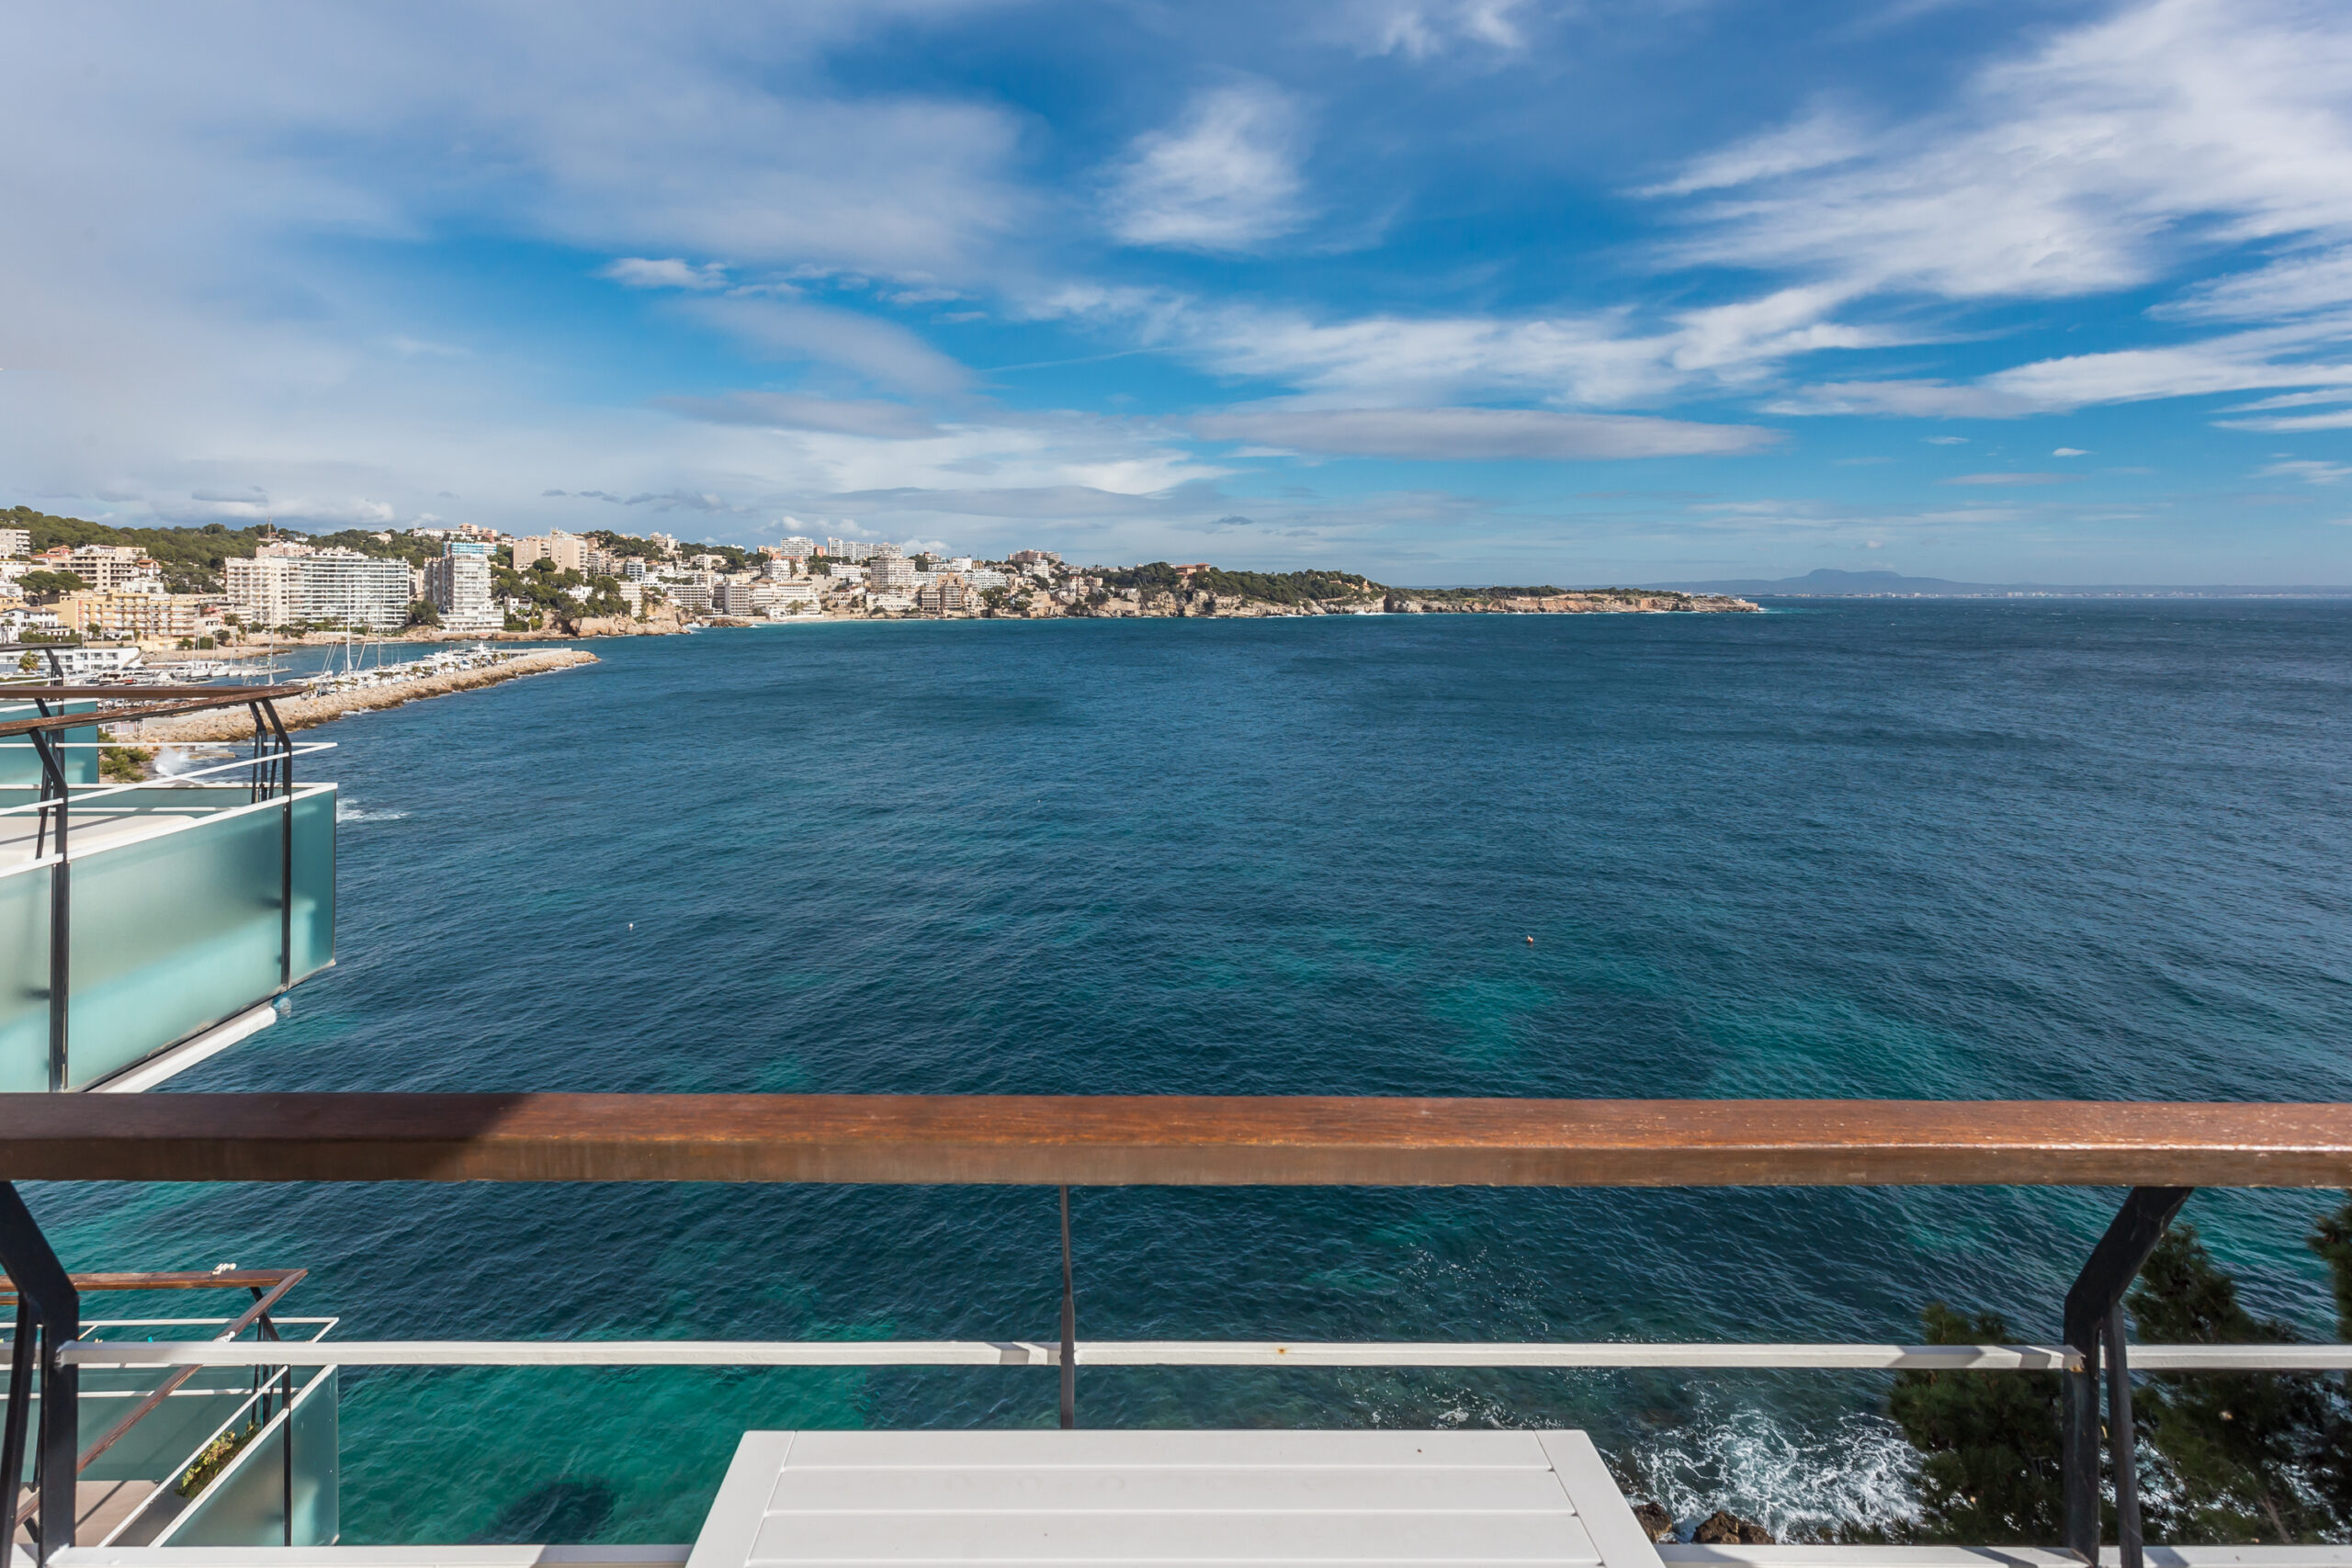 Cas Catala - Illetes: Renovated Frontline 3 bedrooms apartment next to Marisel